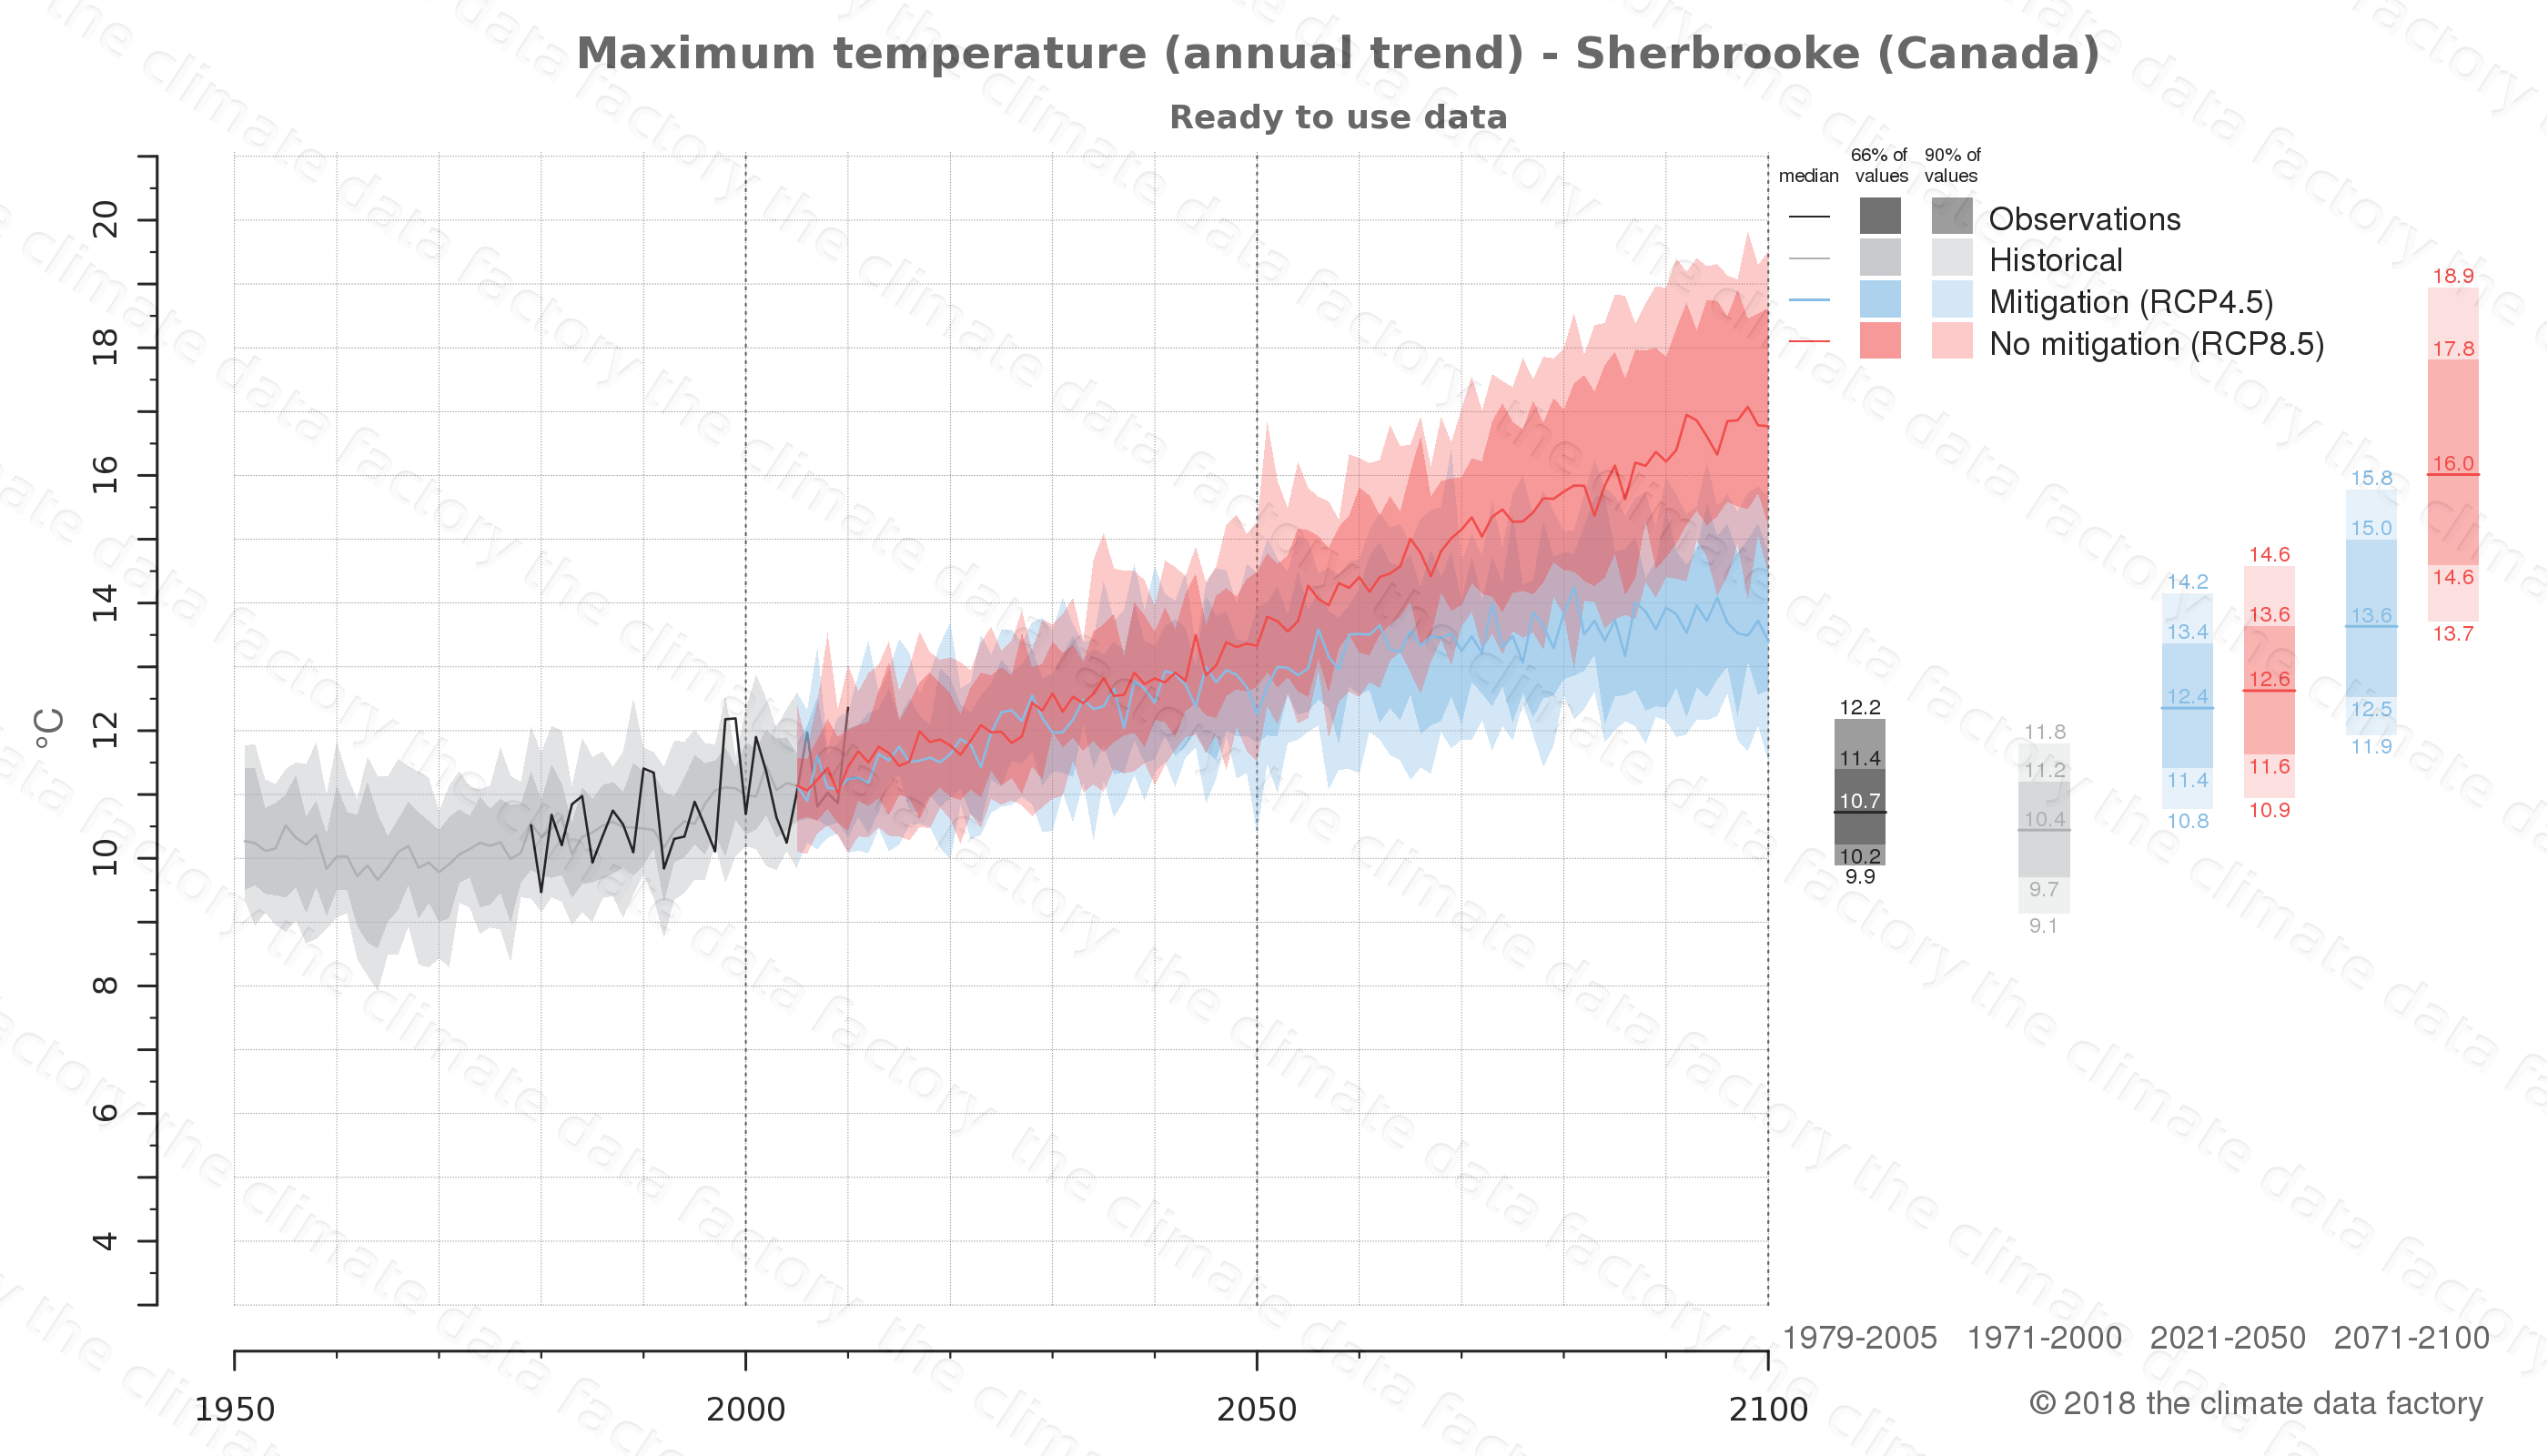 climate change data policy adaptation climate graph city data maximum-temperature sherbrooke canada